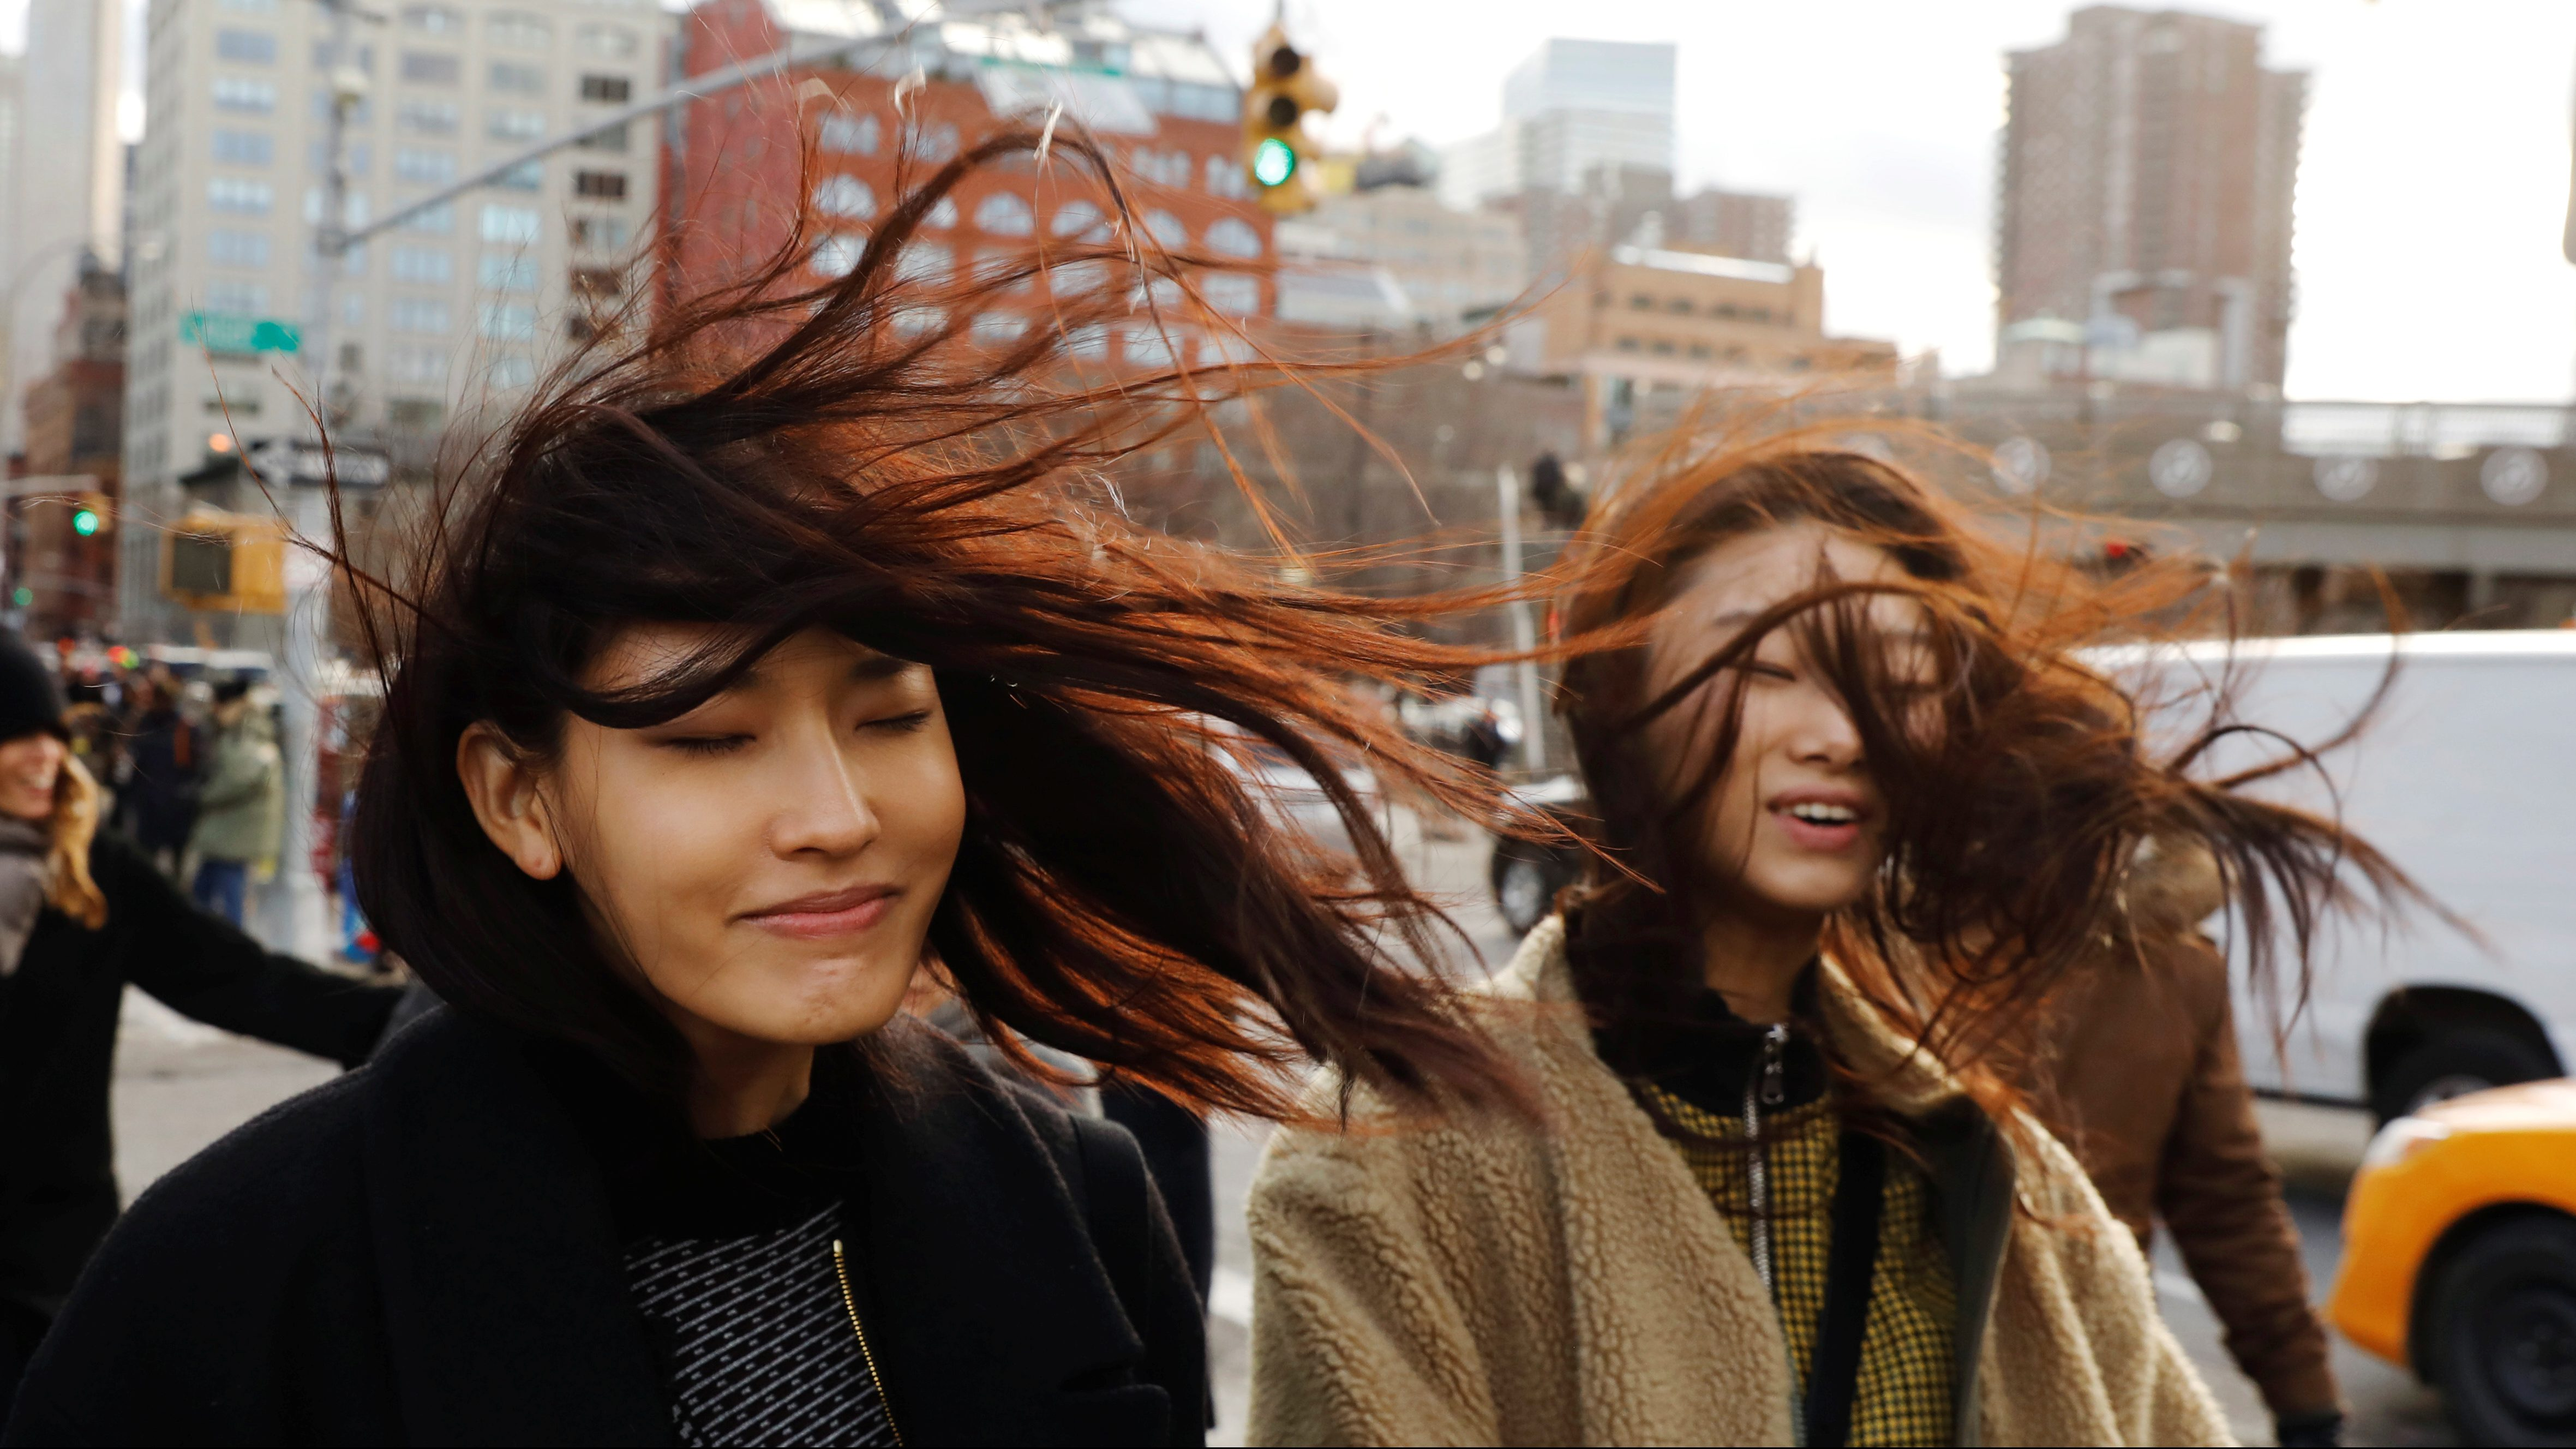 Two women react as the wind blows their hair around while walking on the street in the Manhattan borough of New York.